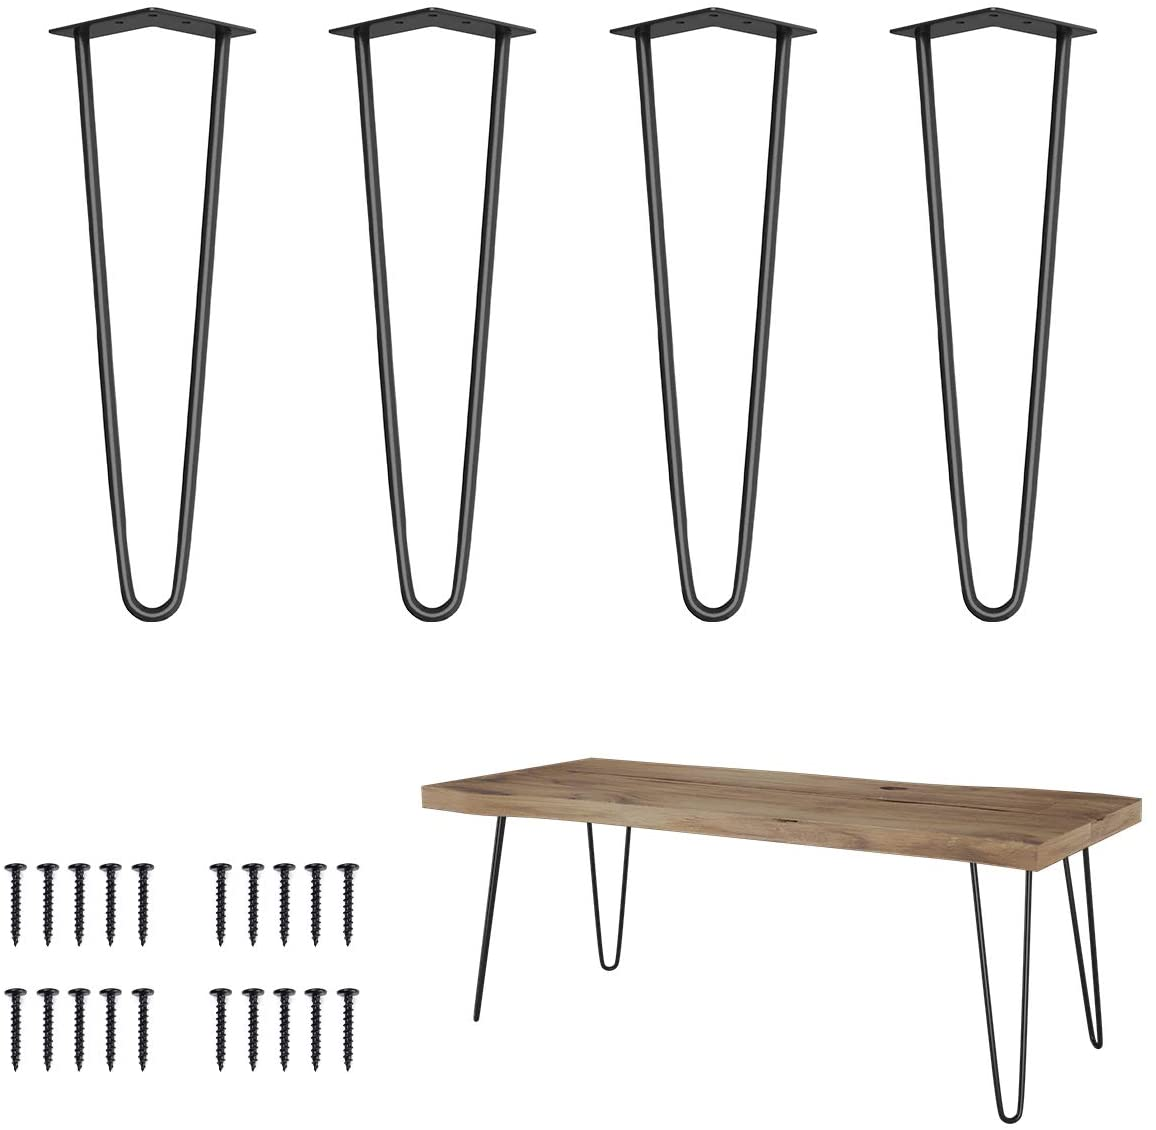 Genius Iron High quality 16 Inches Ranking TOP3 Furniture Hairpin 3 Metal Rods Legs 8in